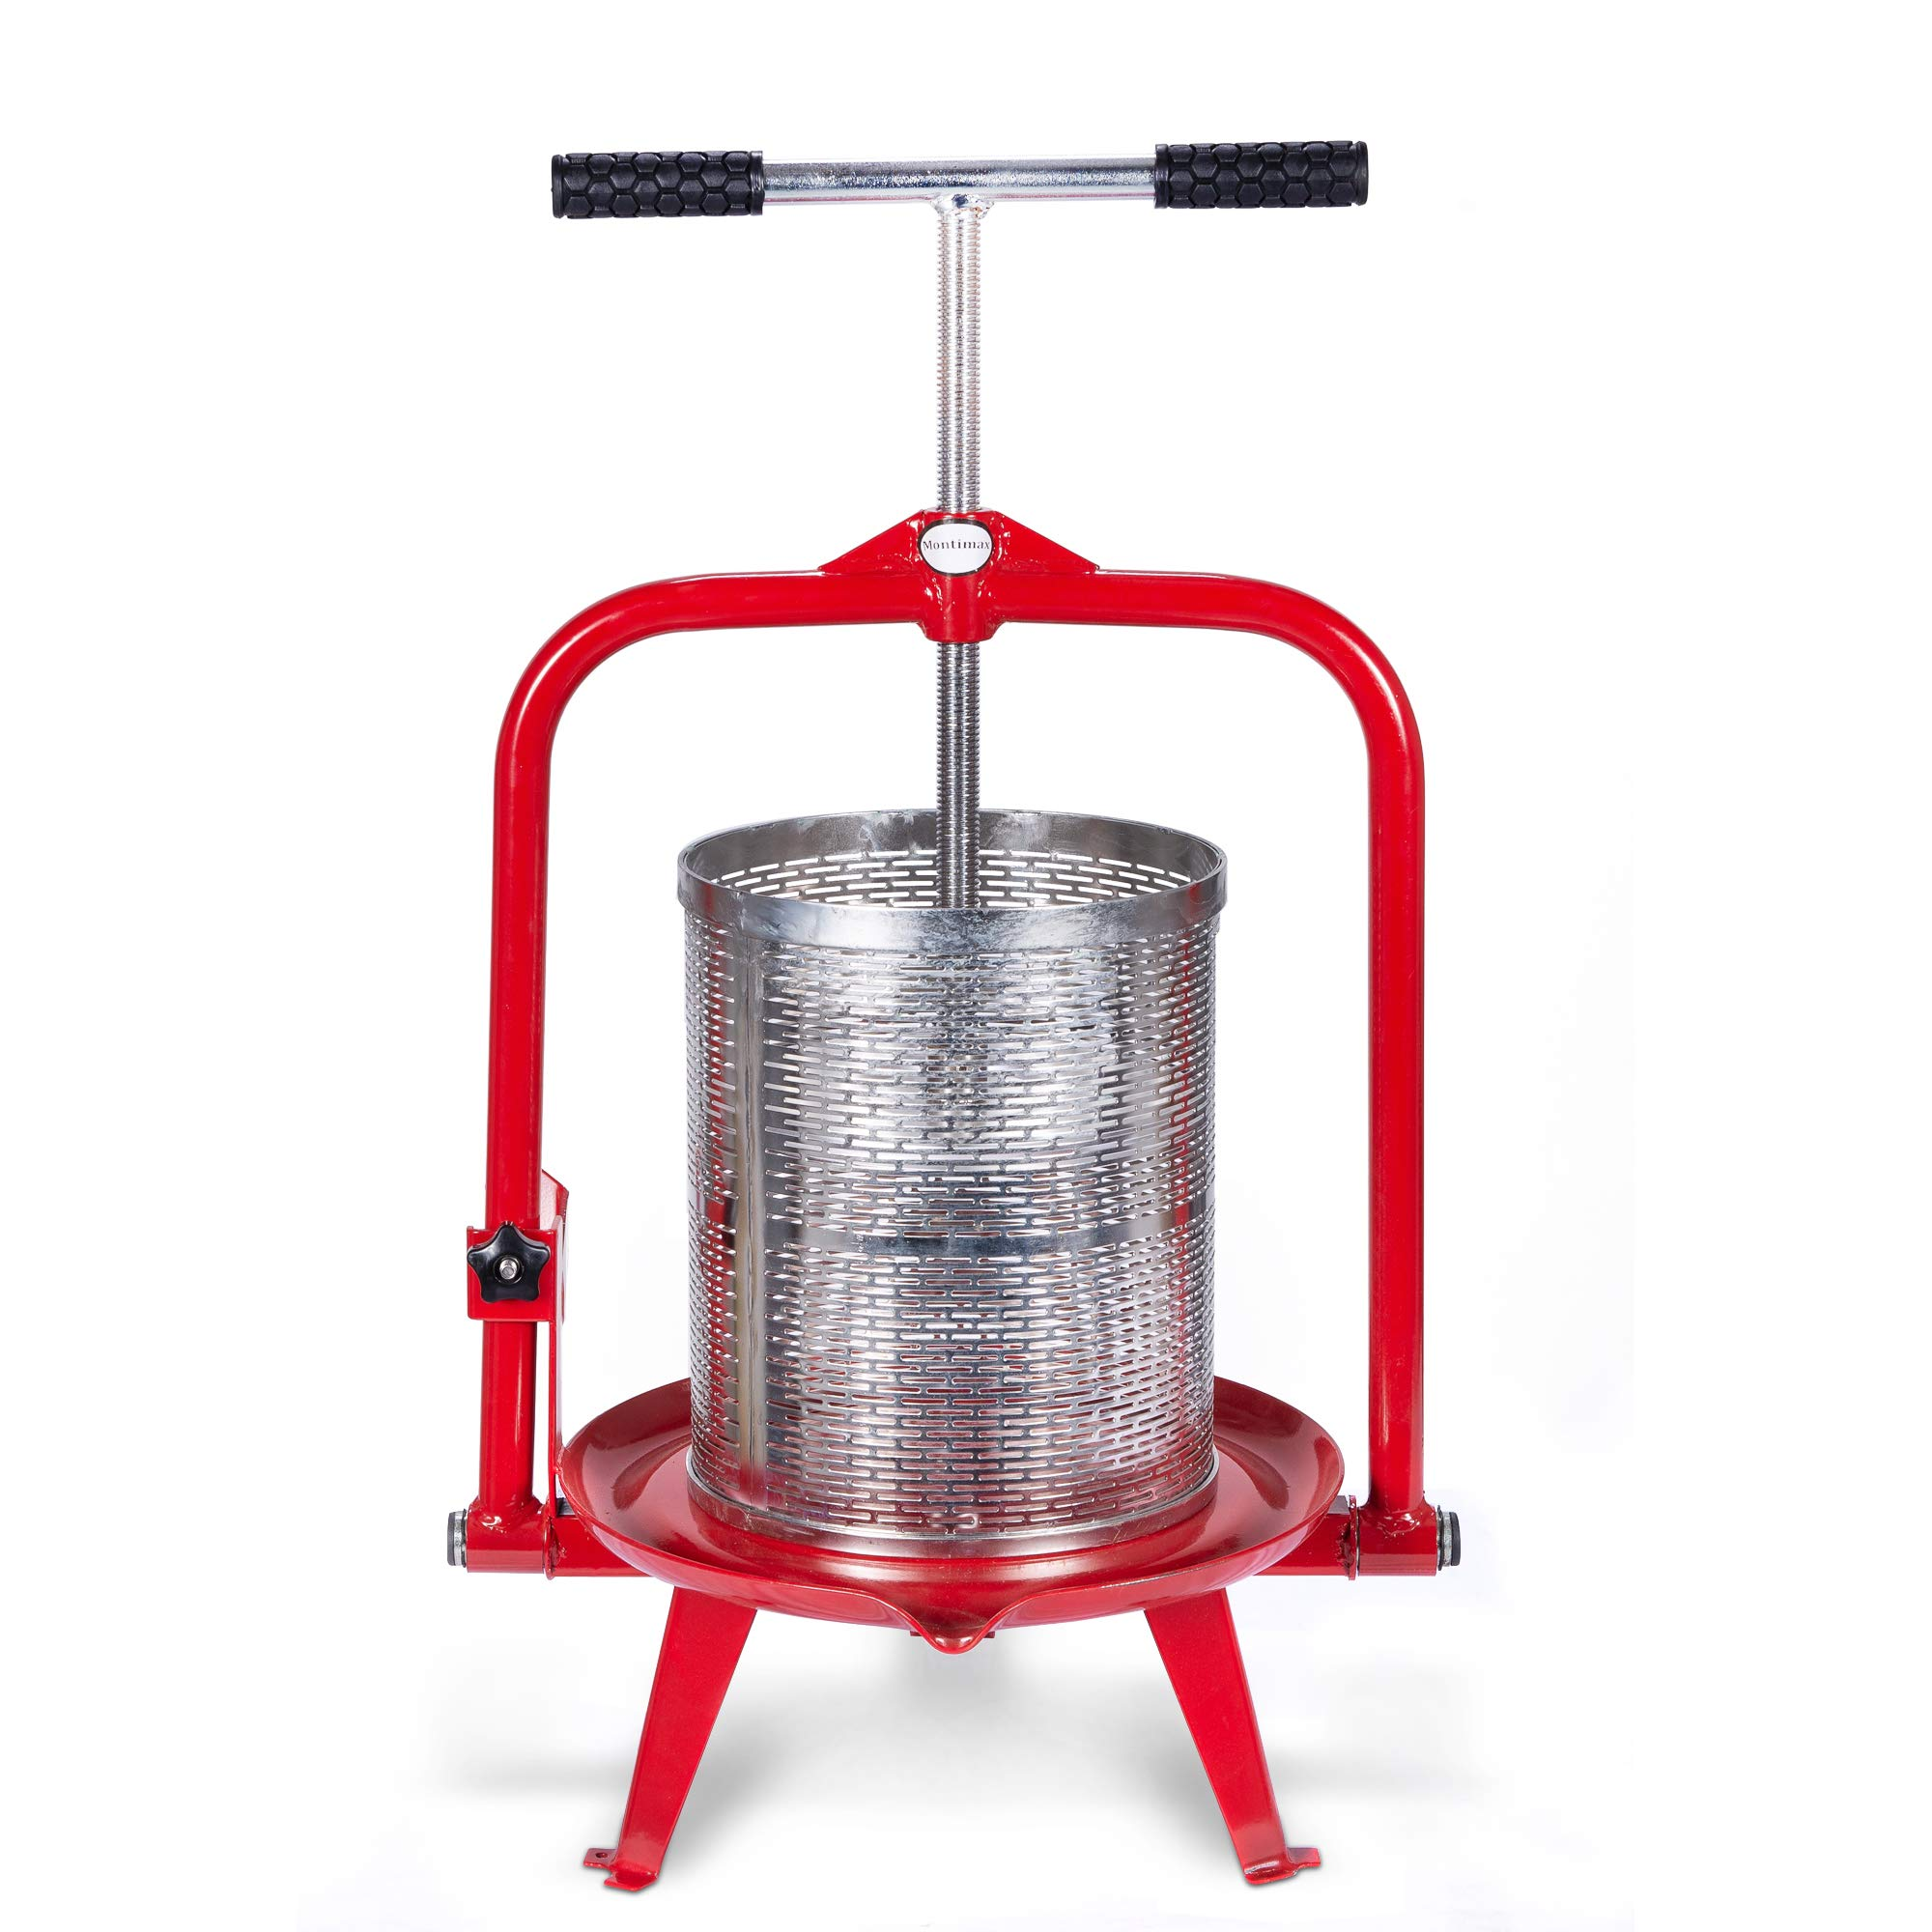 14 Liter (3.75 Gallon) Fruit Press - New Larger Stainless Pressing Plate - Cider, Wine, Grape, Apple Press, For Apple Cider, Wine and Juice Making, Stainless Steel, Choose Size by Montimax by Montimax By Green Max Products (Image #1)